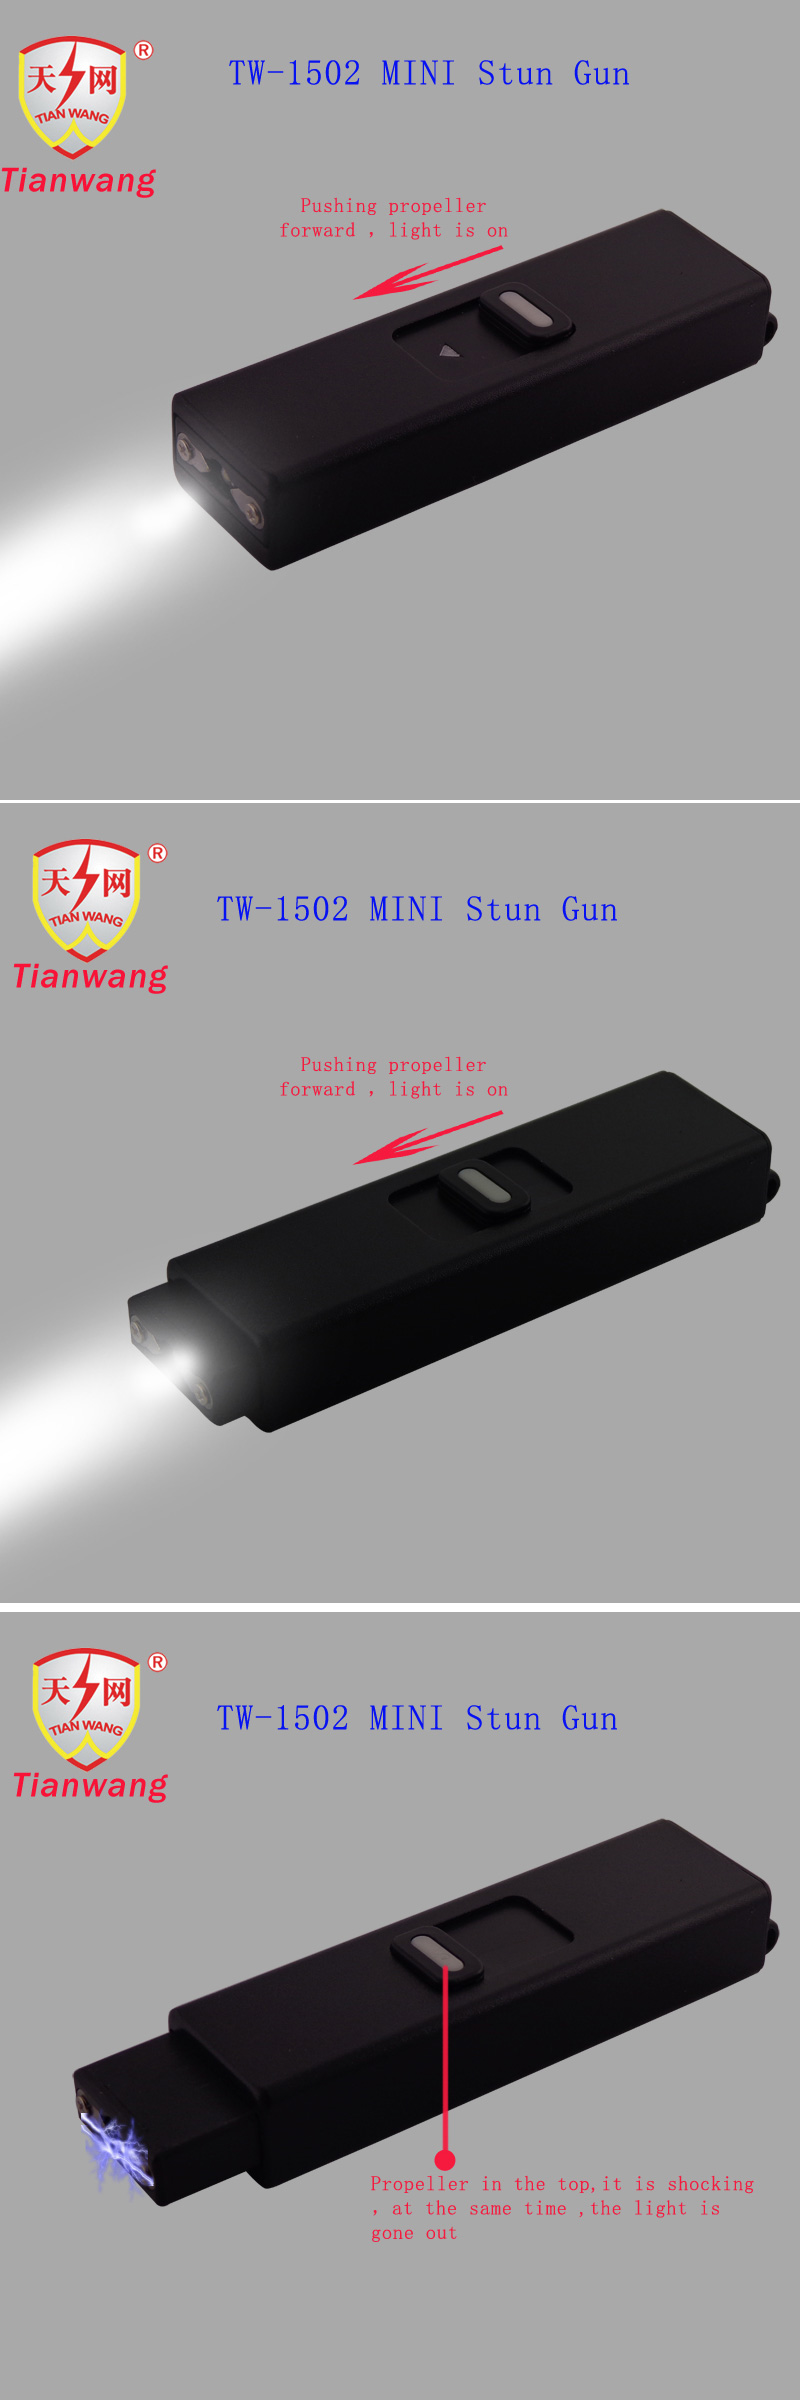 Miniature Stun Guns with Flashlight Cheap (TW-1502)